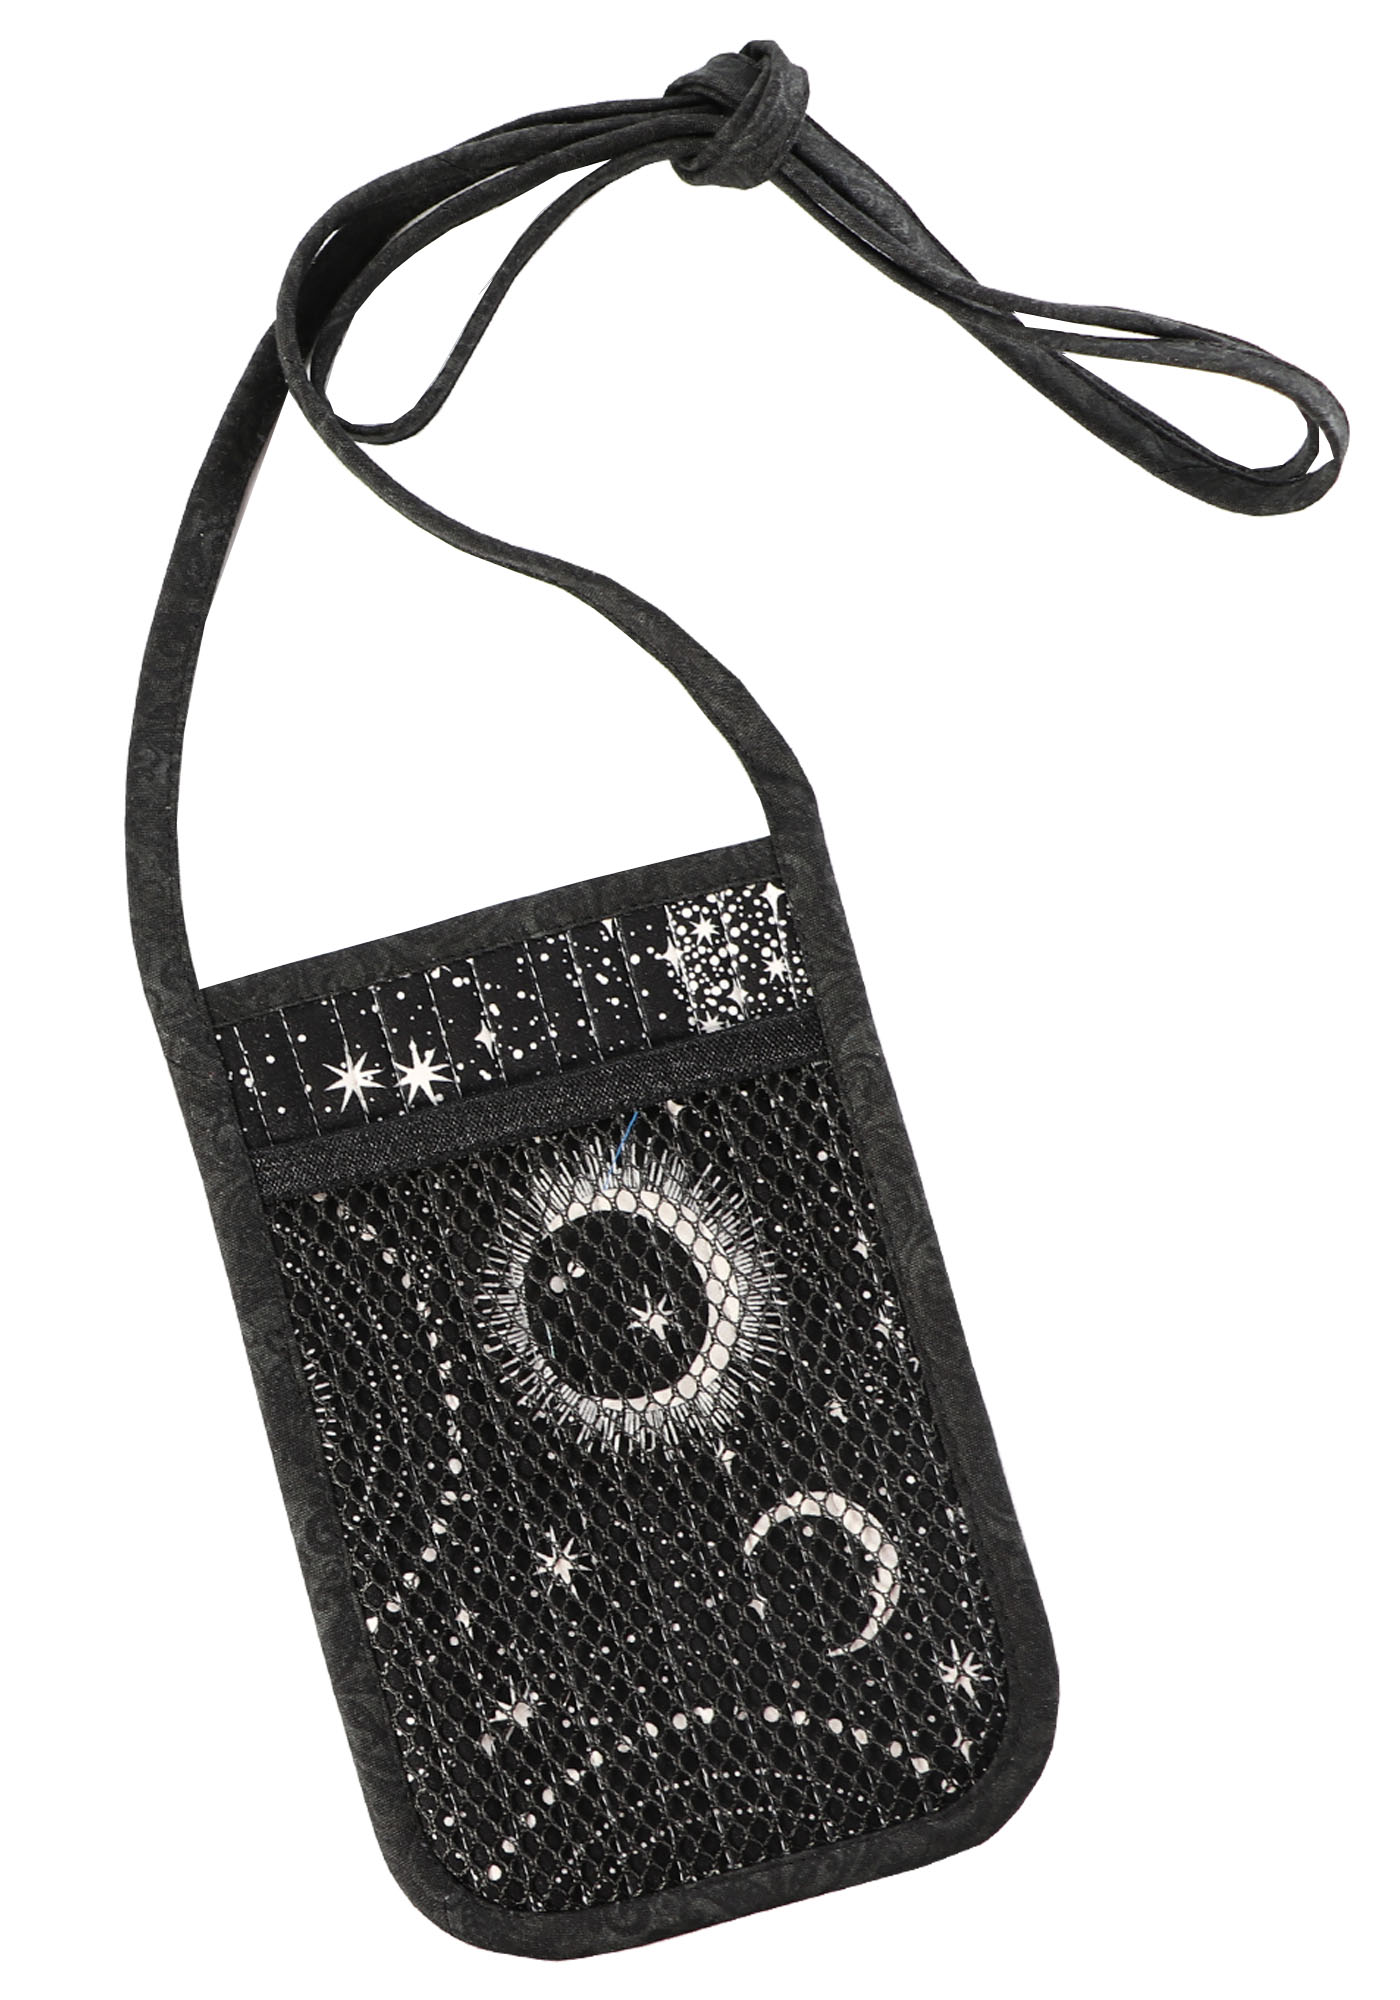 image of name tag / cell phone bag